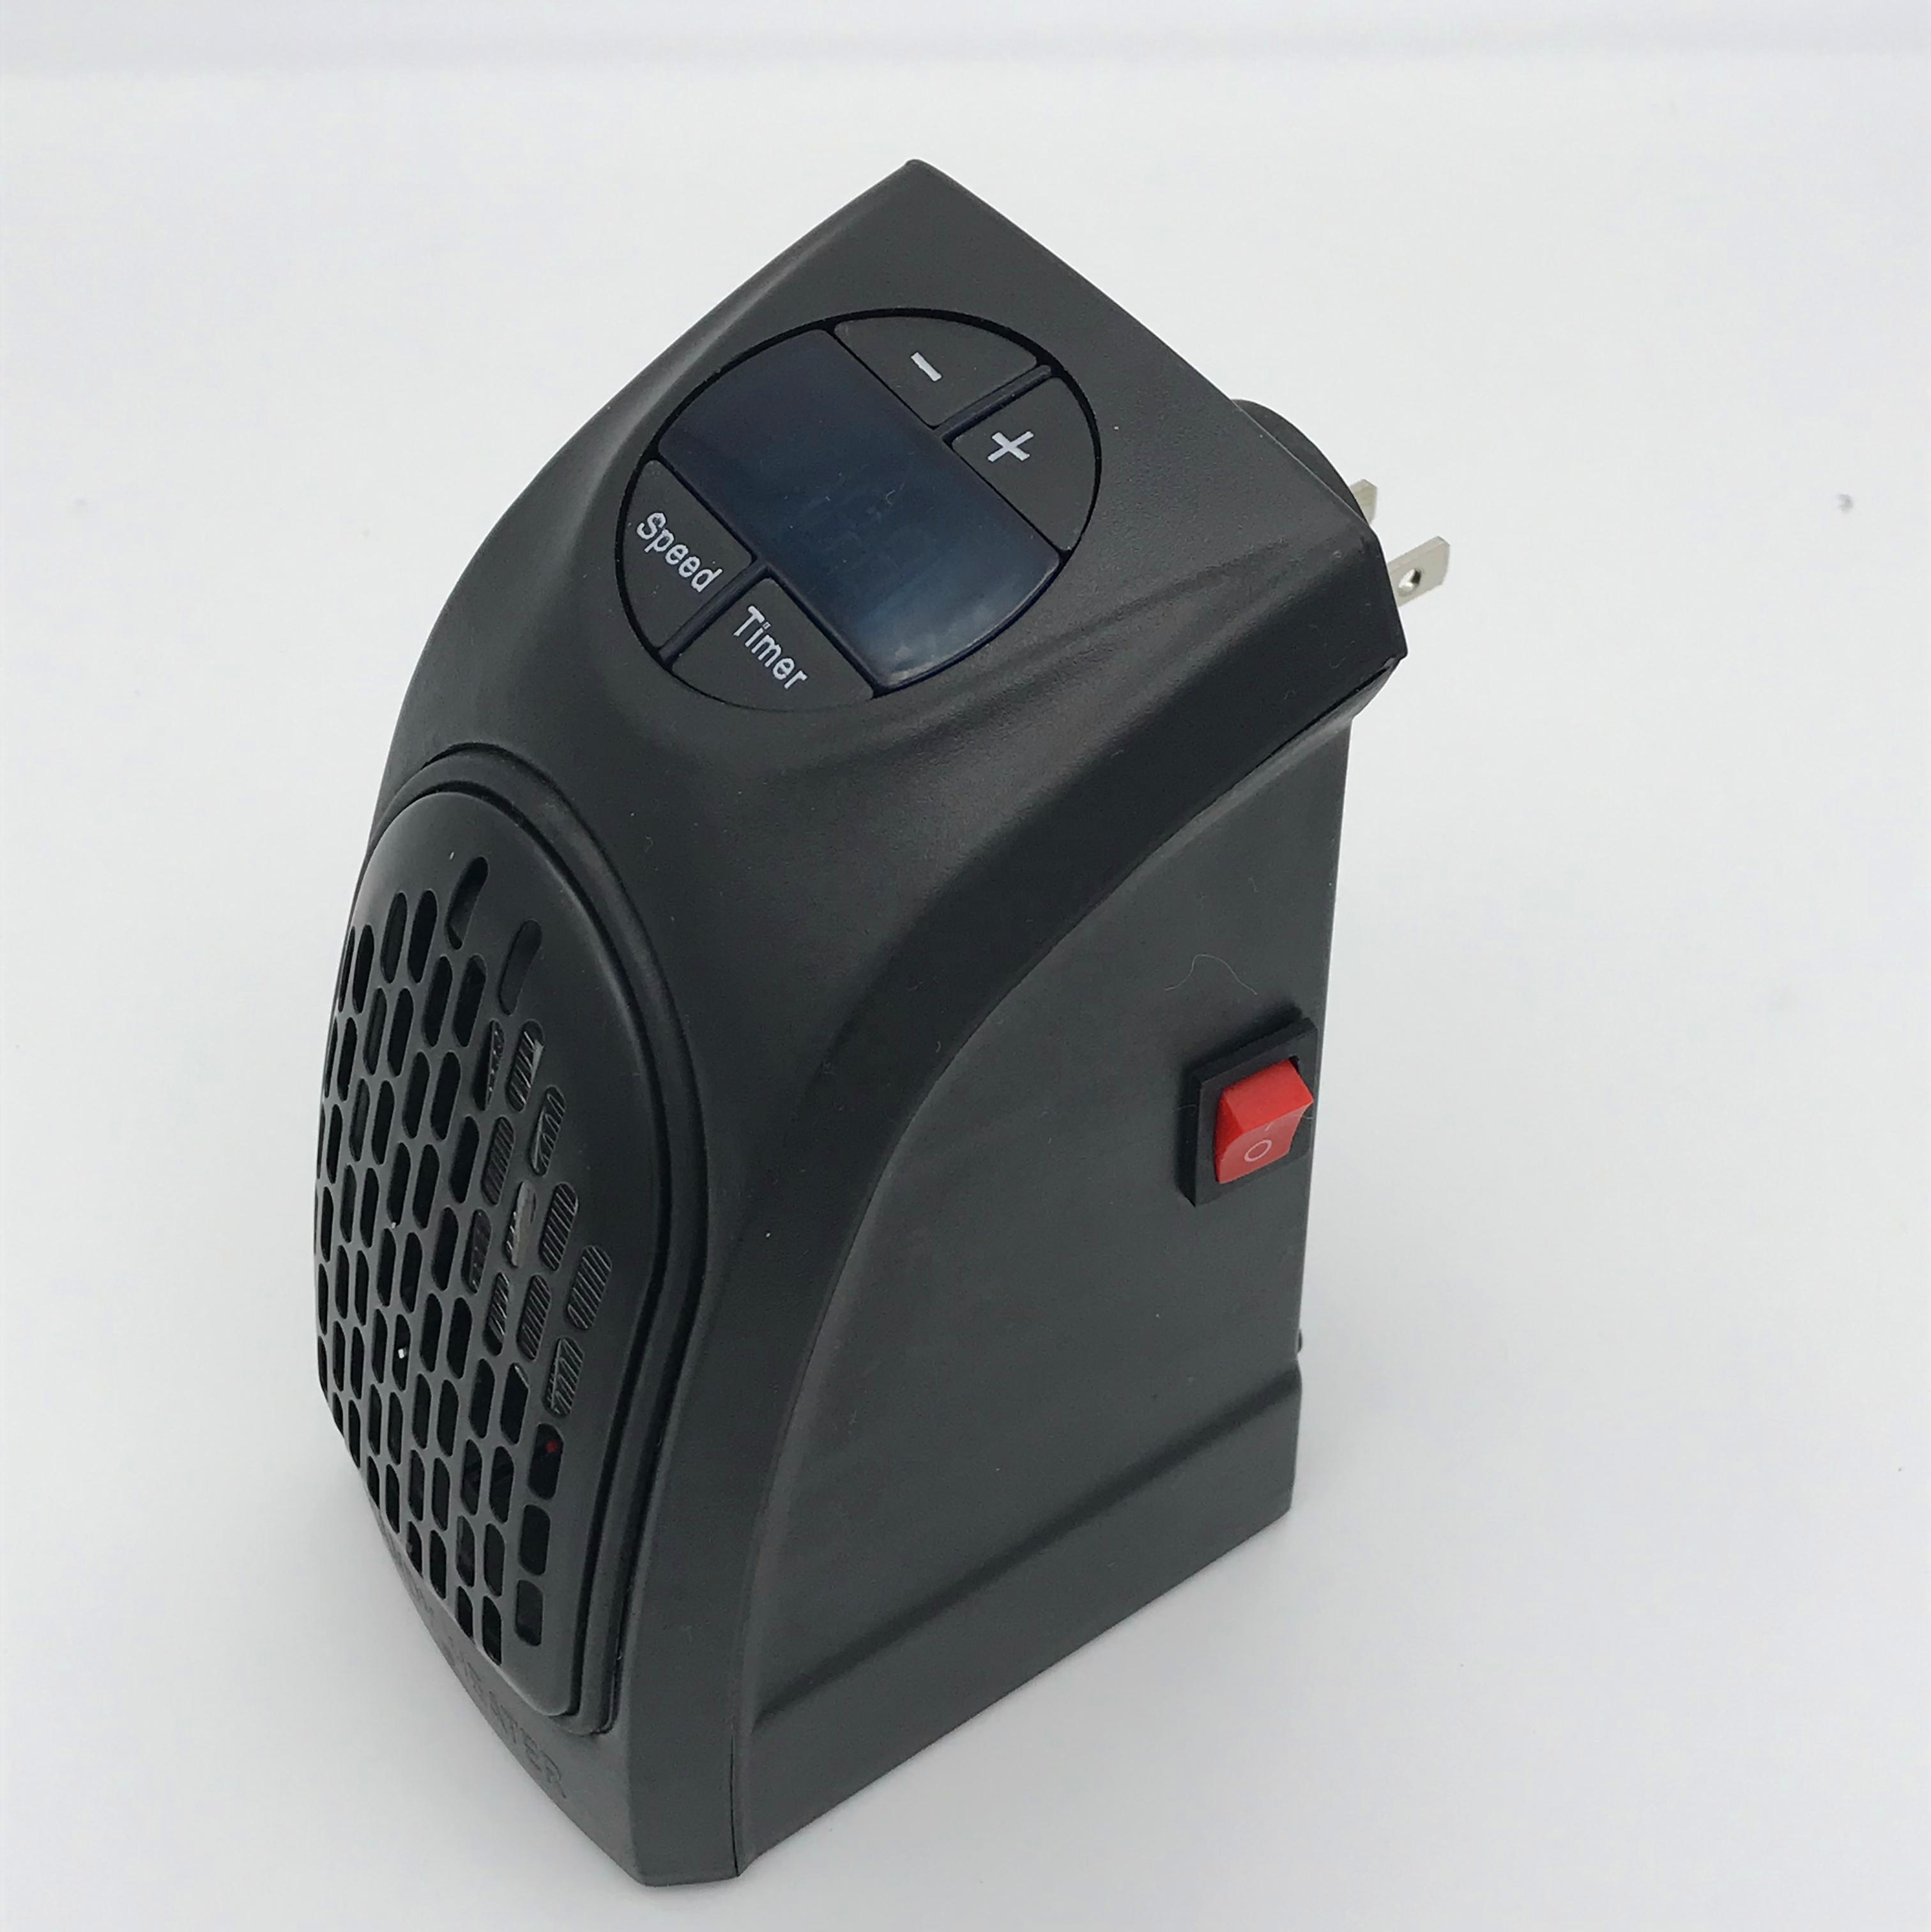 Mini Baby Safe Material Heating Machine 400W Power Portable Office Desktop Handy <strong>Heater</strong>